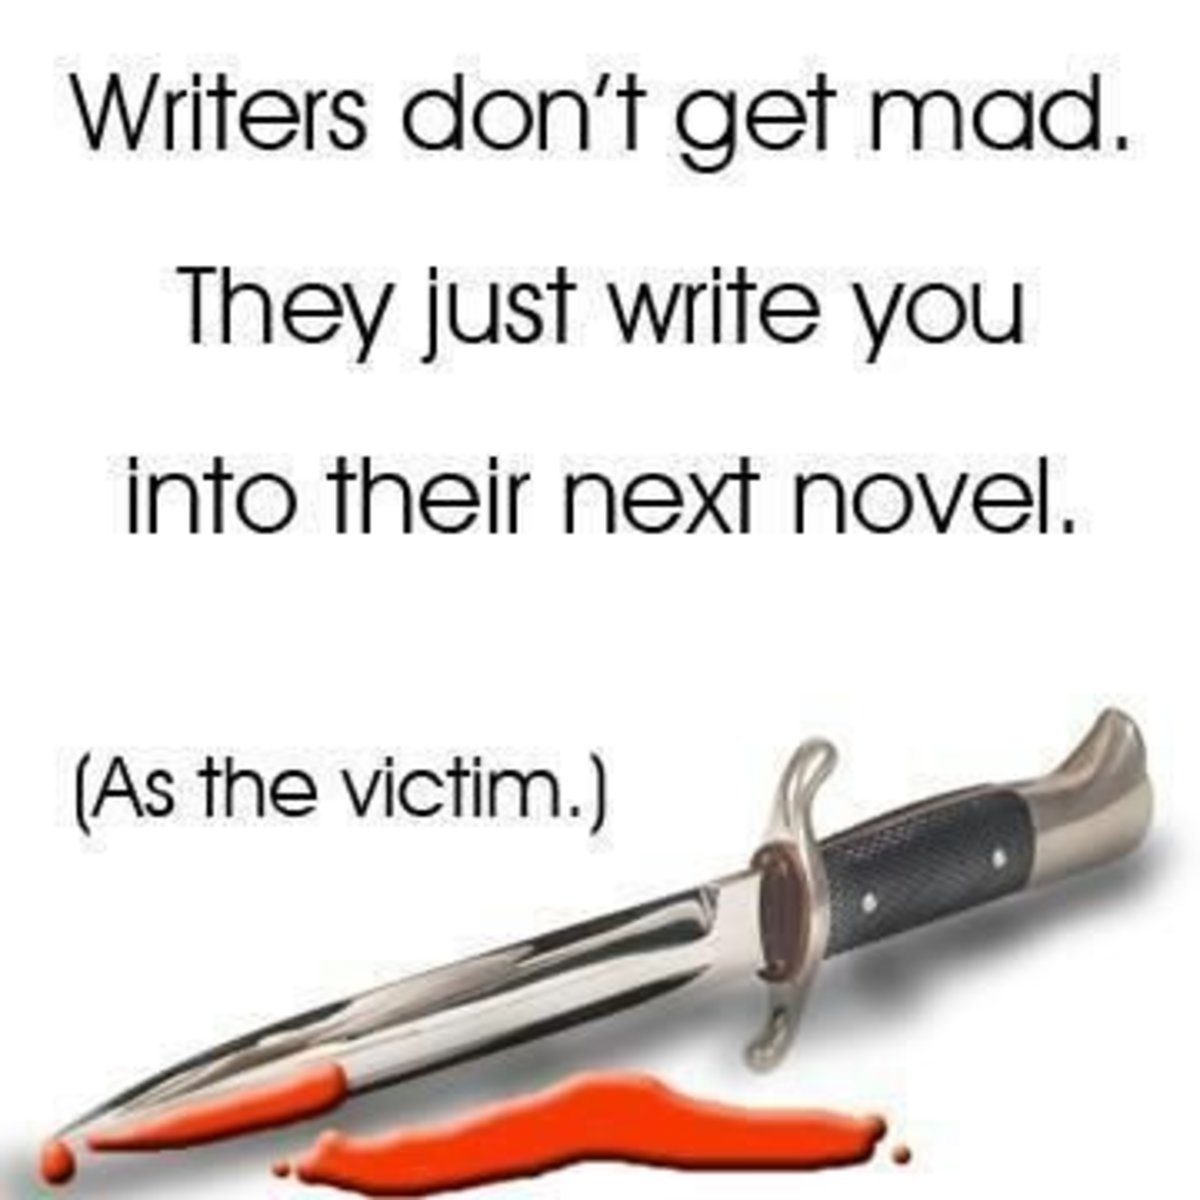 Writers don't get mad...We stab